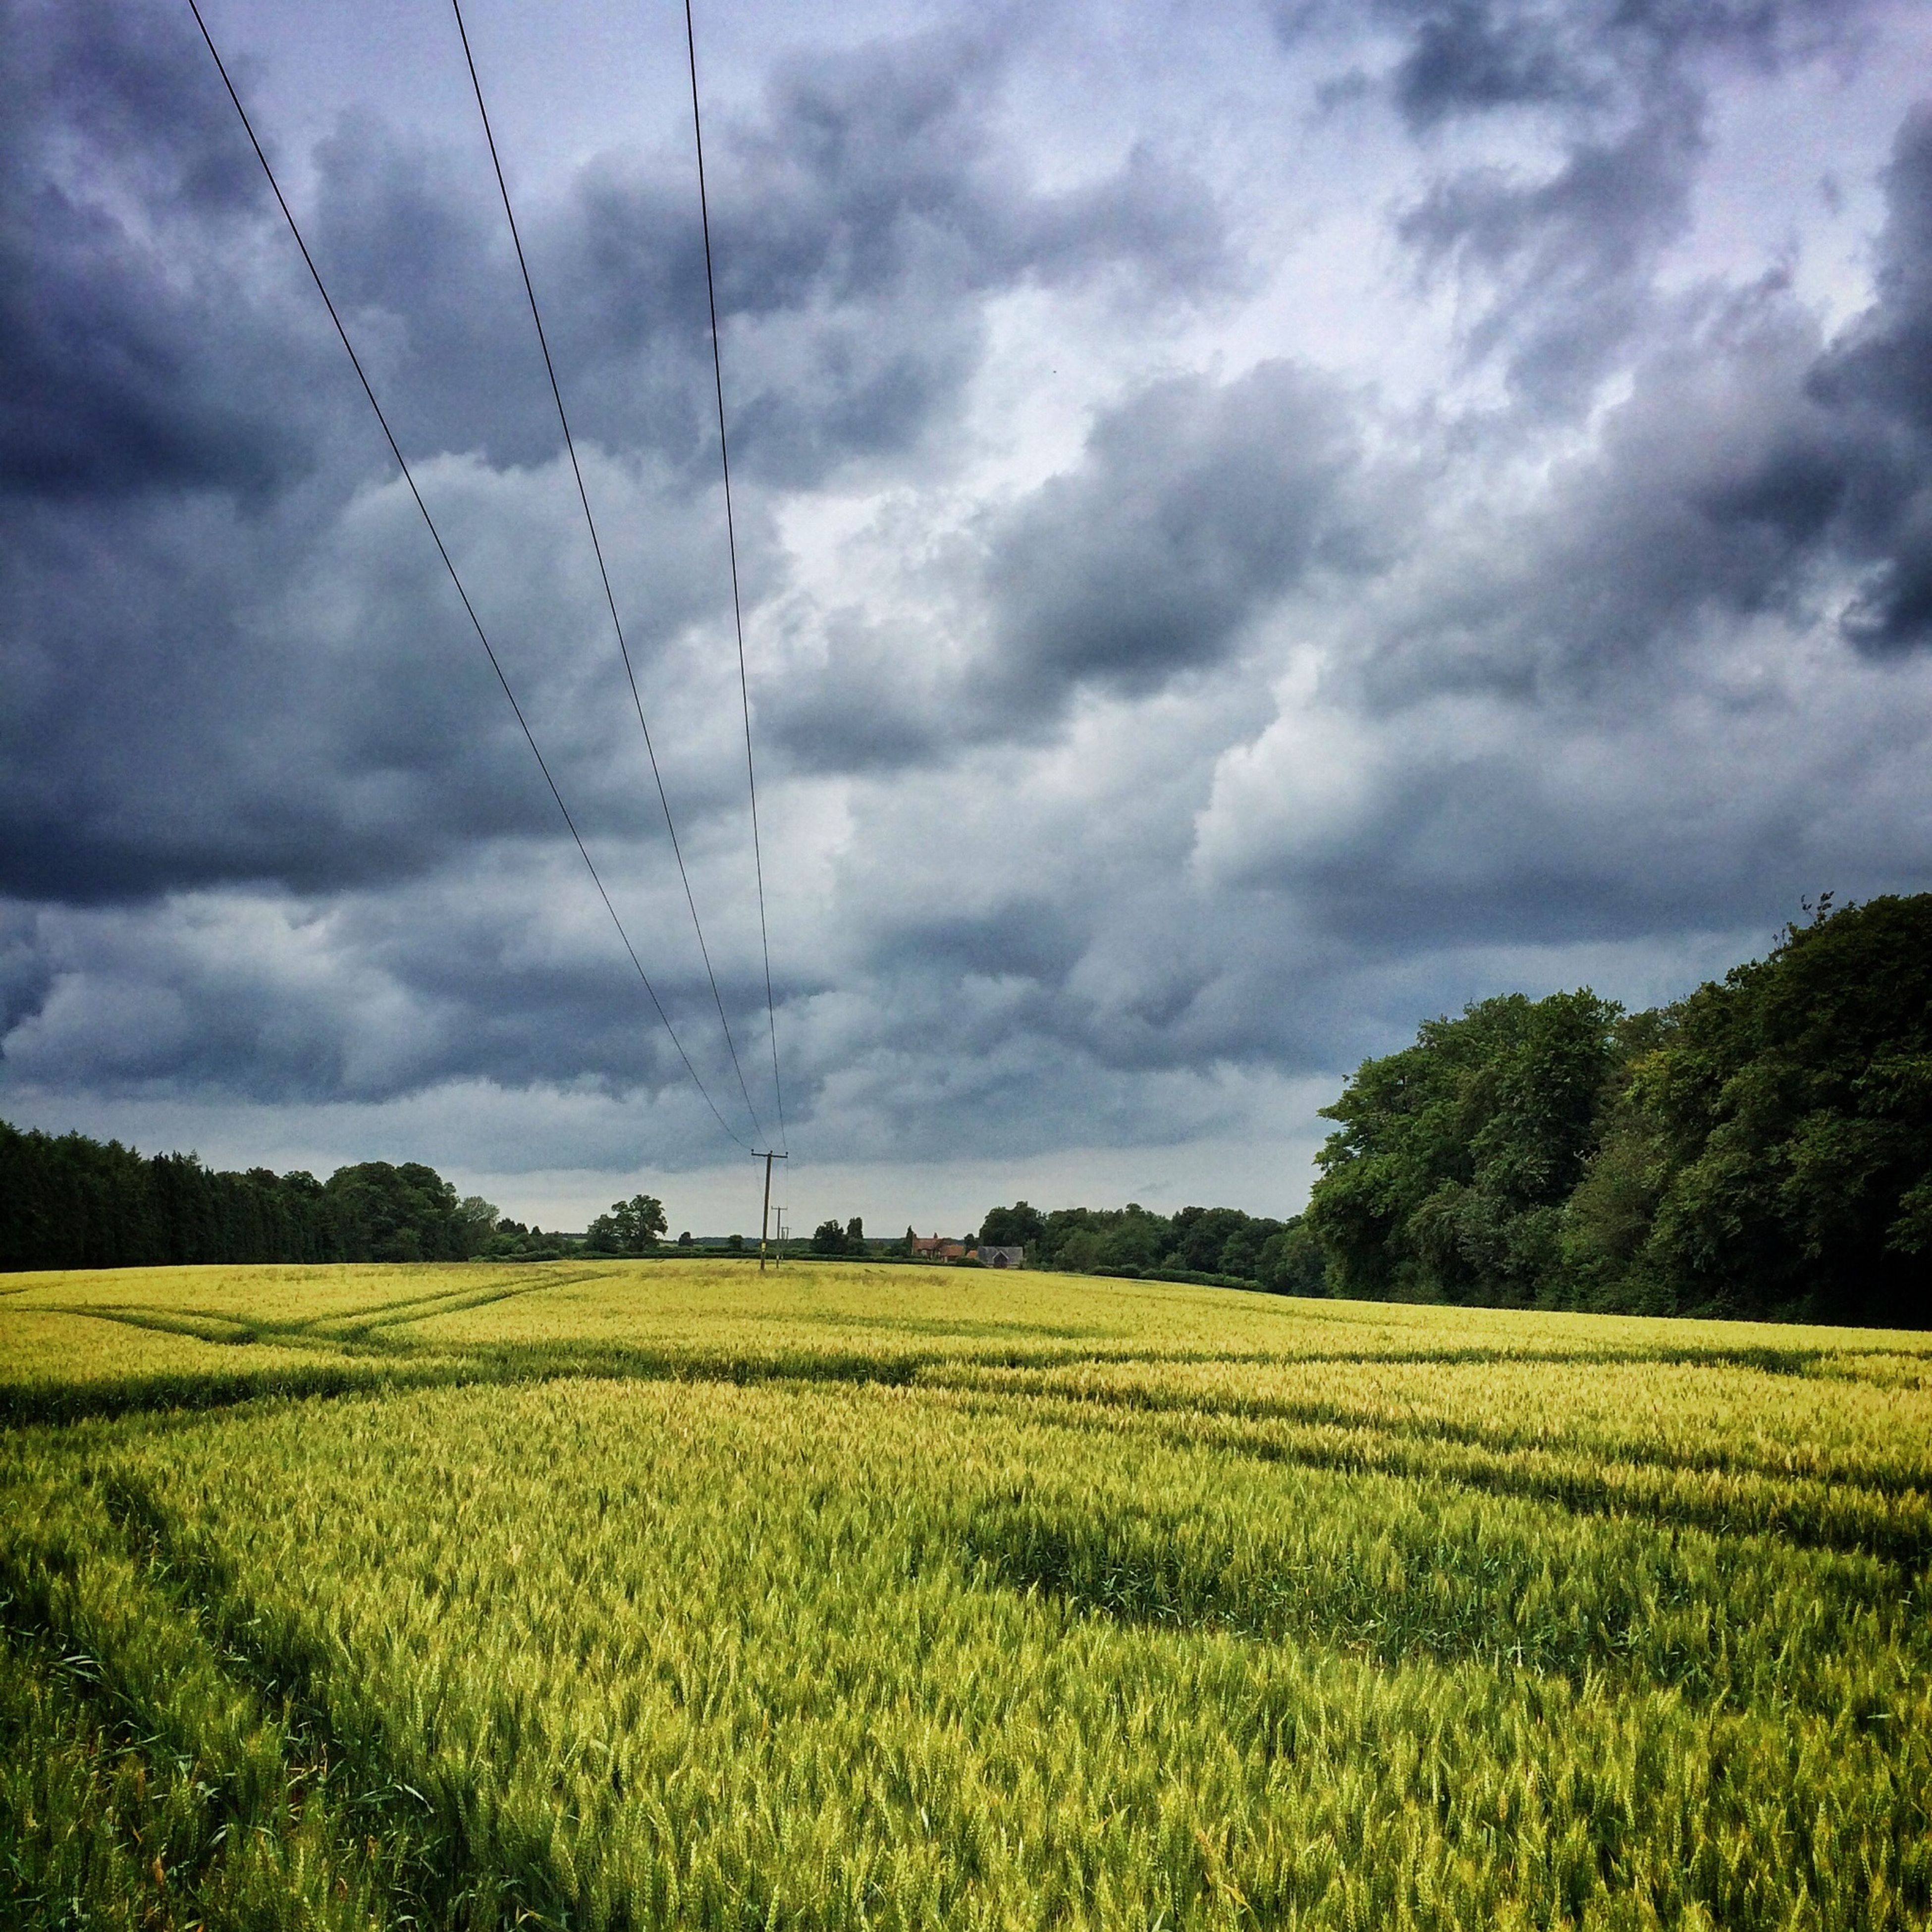 field, sky, landscape, agriculture, rural scene, tranquil scene, tranquility, cloud - sky, growth, farm, scenics, beauty in nature, nature, cloudy, crop, cultivated land, cloud, tree, grass, green color